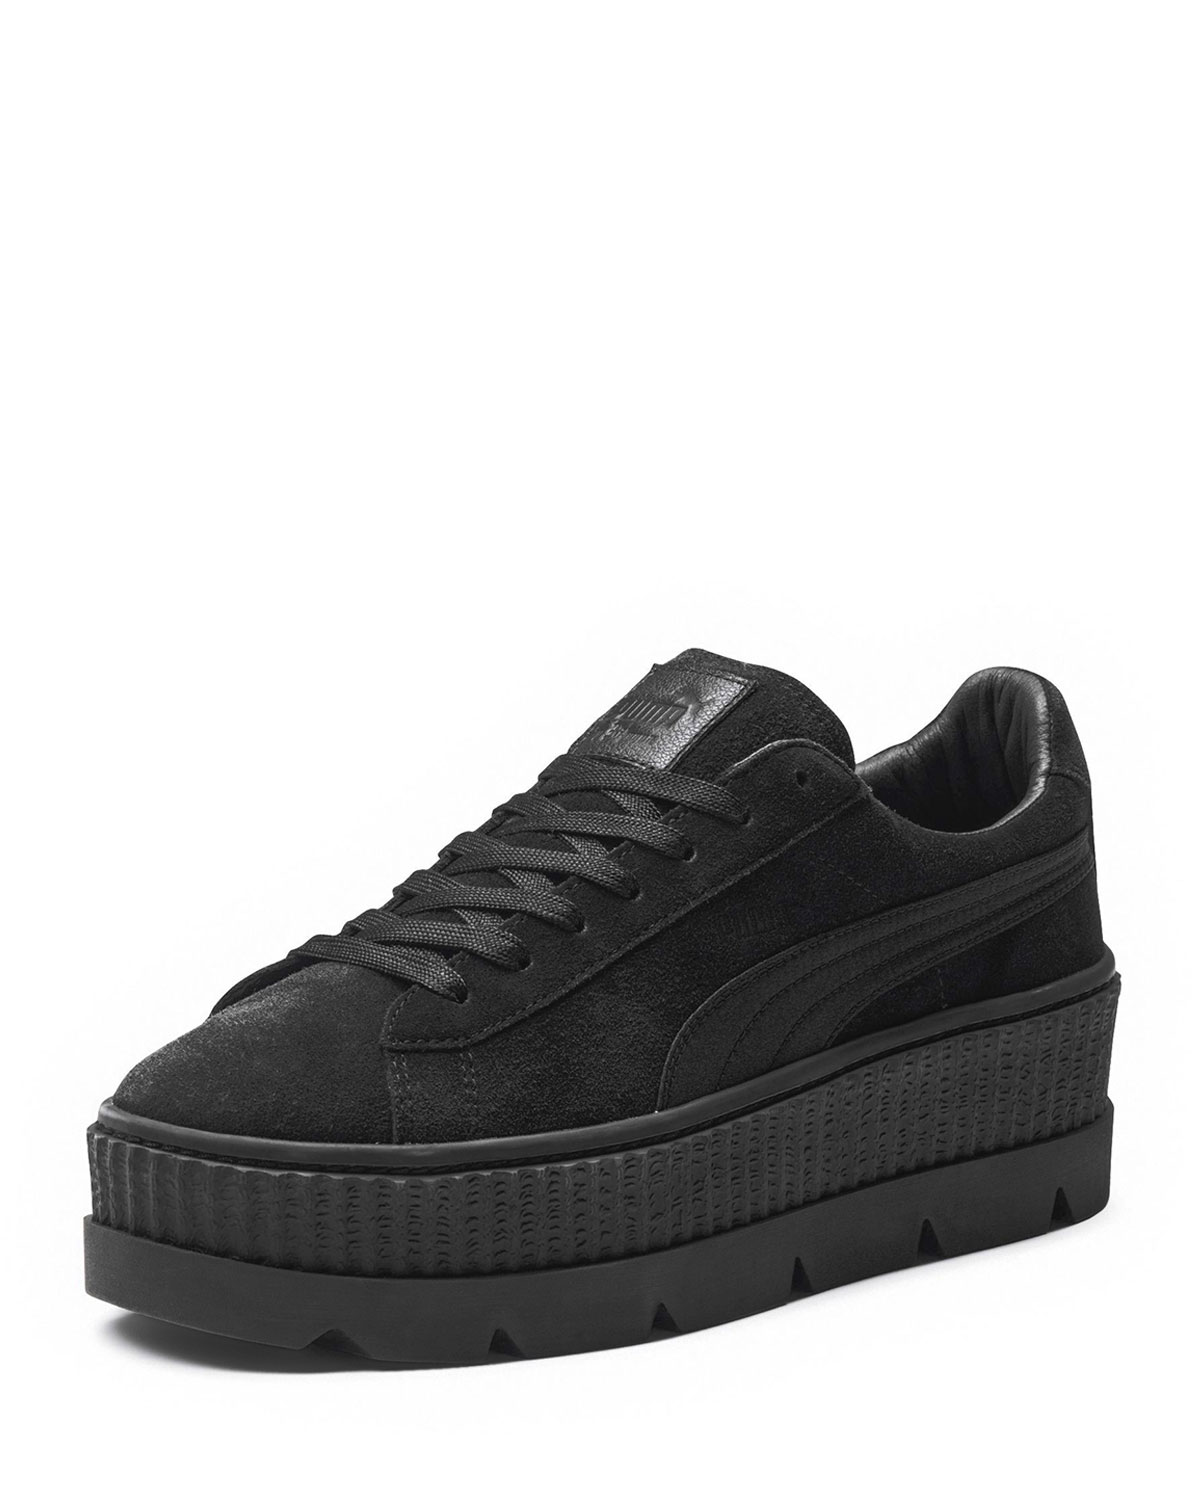 newest collection 037a8 84390 Fenty Puma by Rihanna Cleated Suede Creeper Sneaker